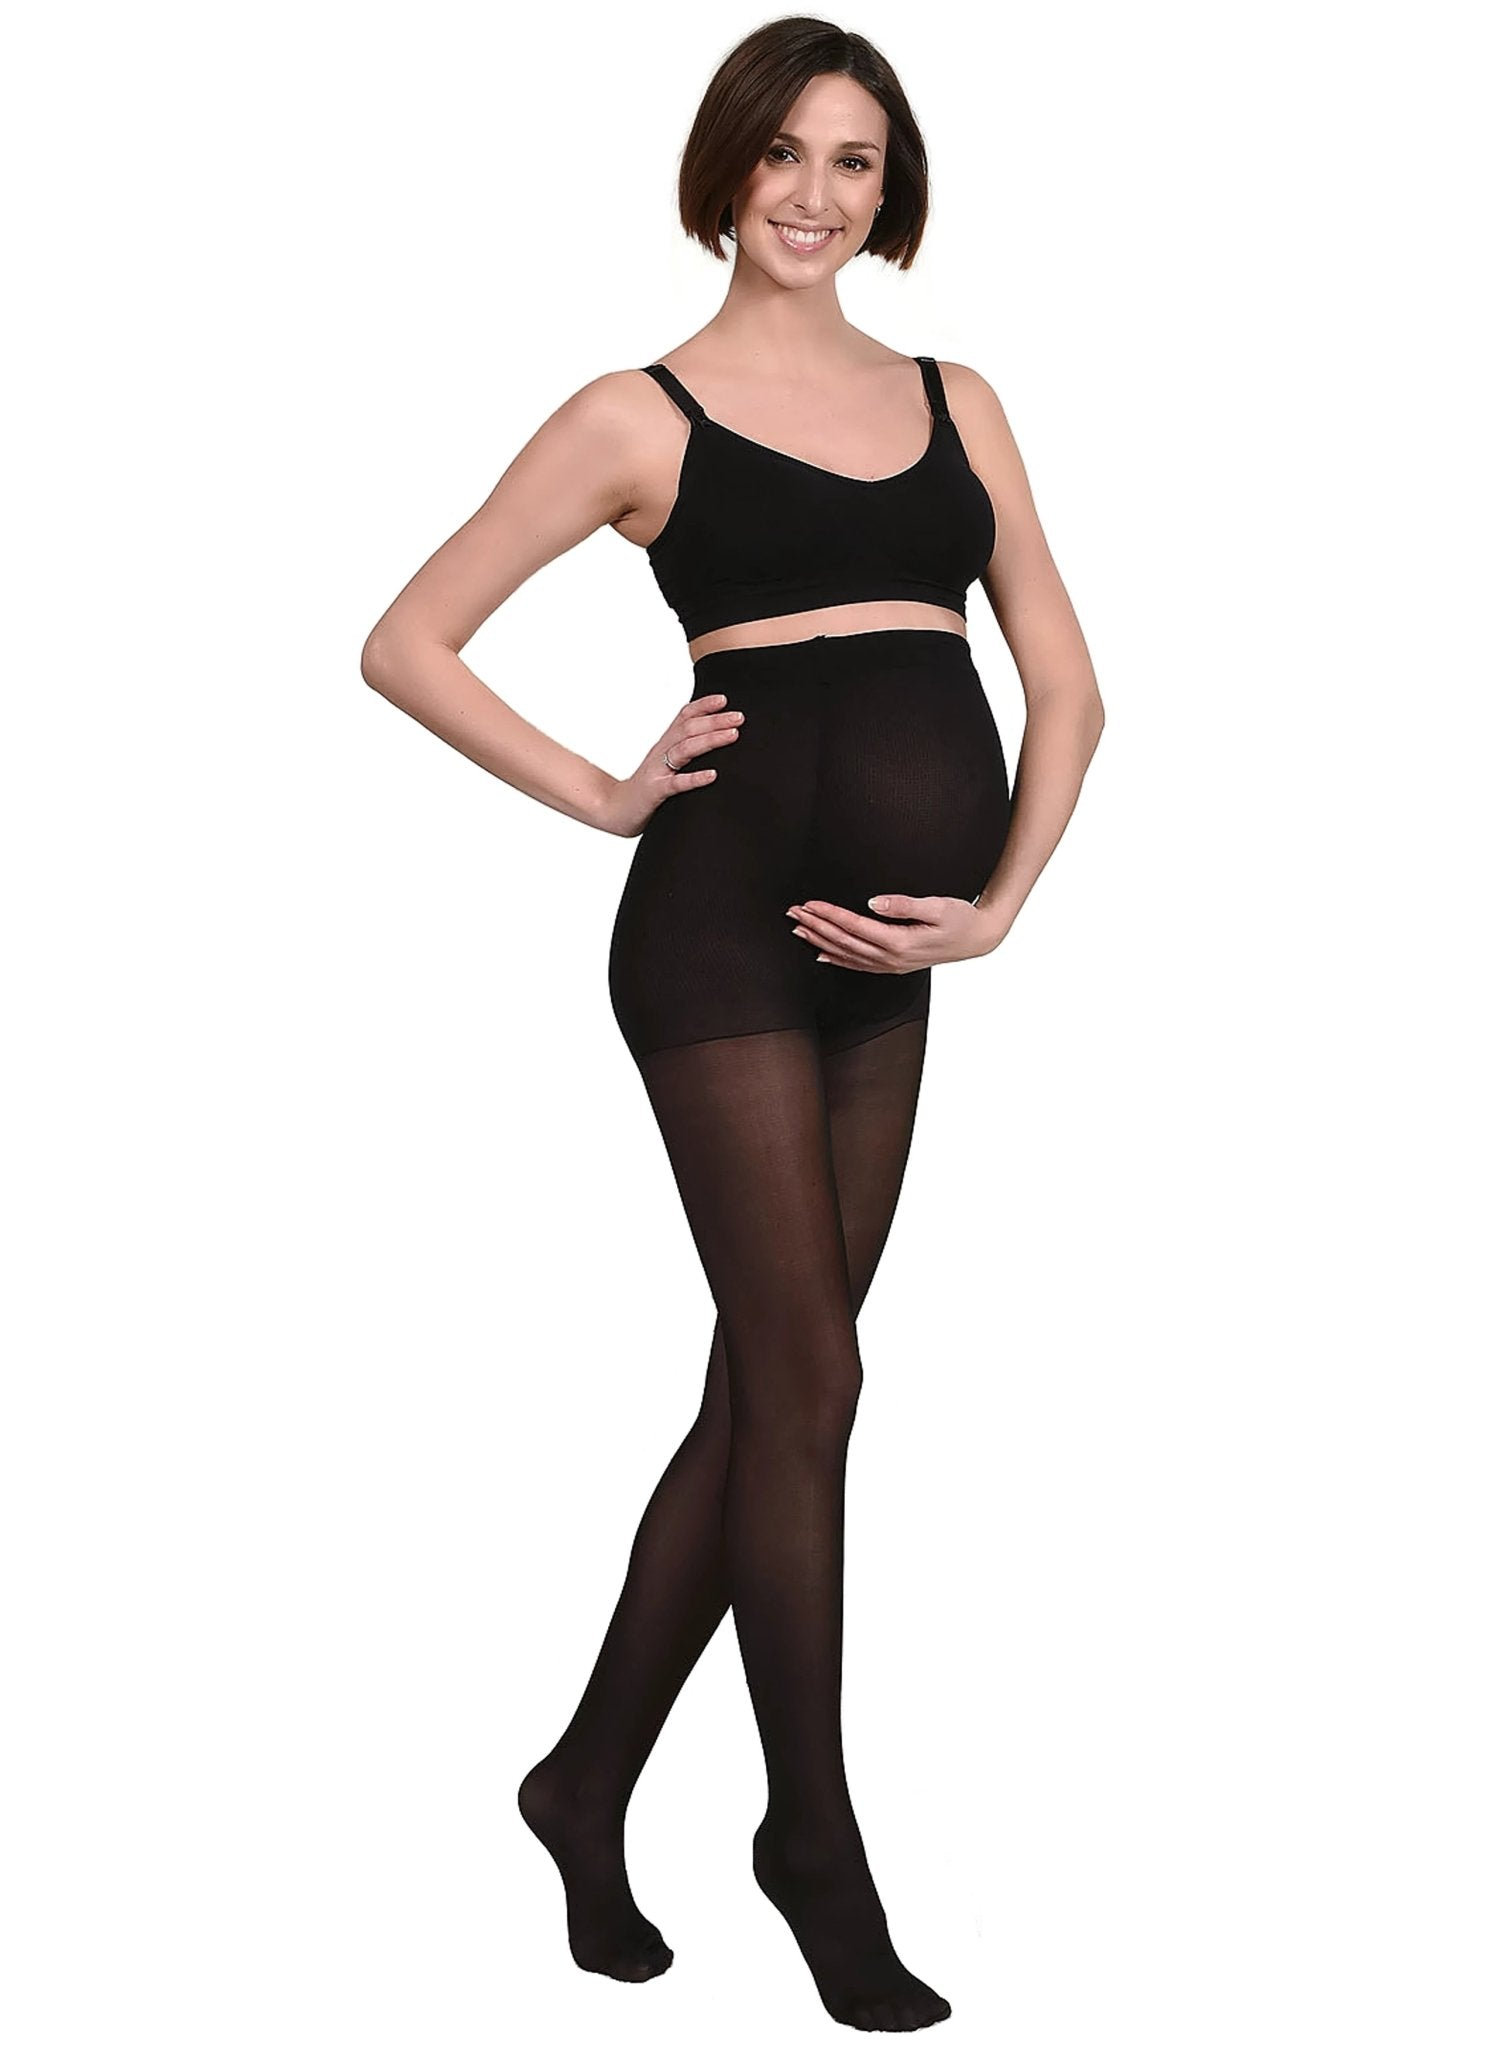 40Den Maternity Tights - Black - Mums and Bumps